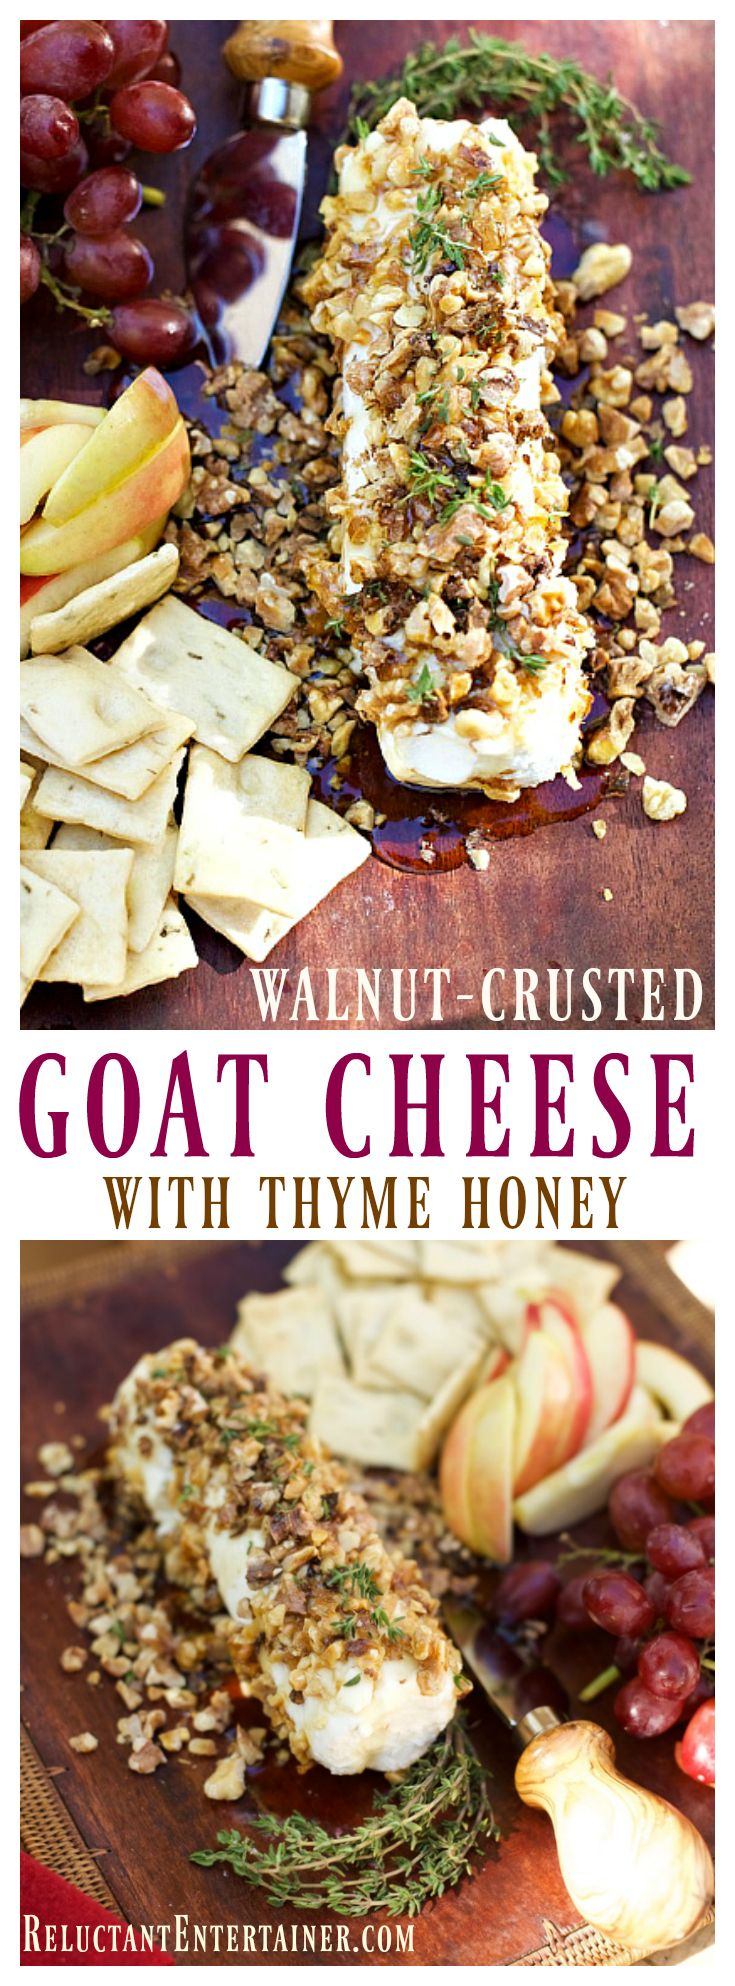 Walnut-Crusted Goat Cheese with Thyme Honey is an elegant appetizer to serve at…